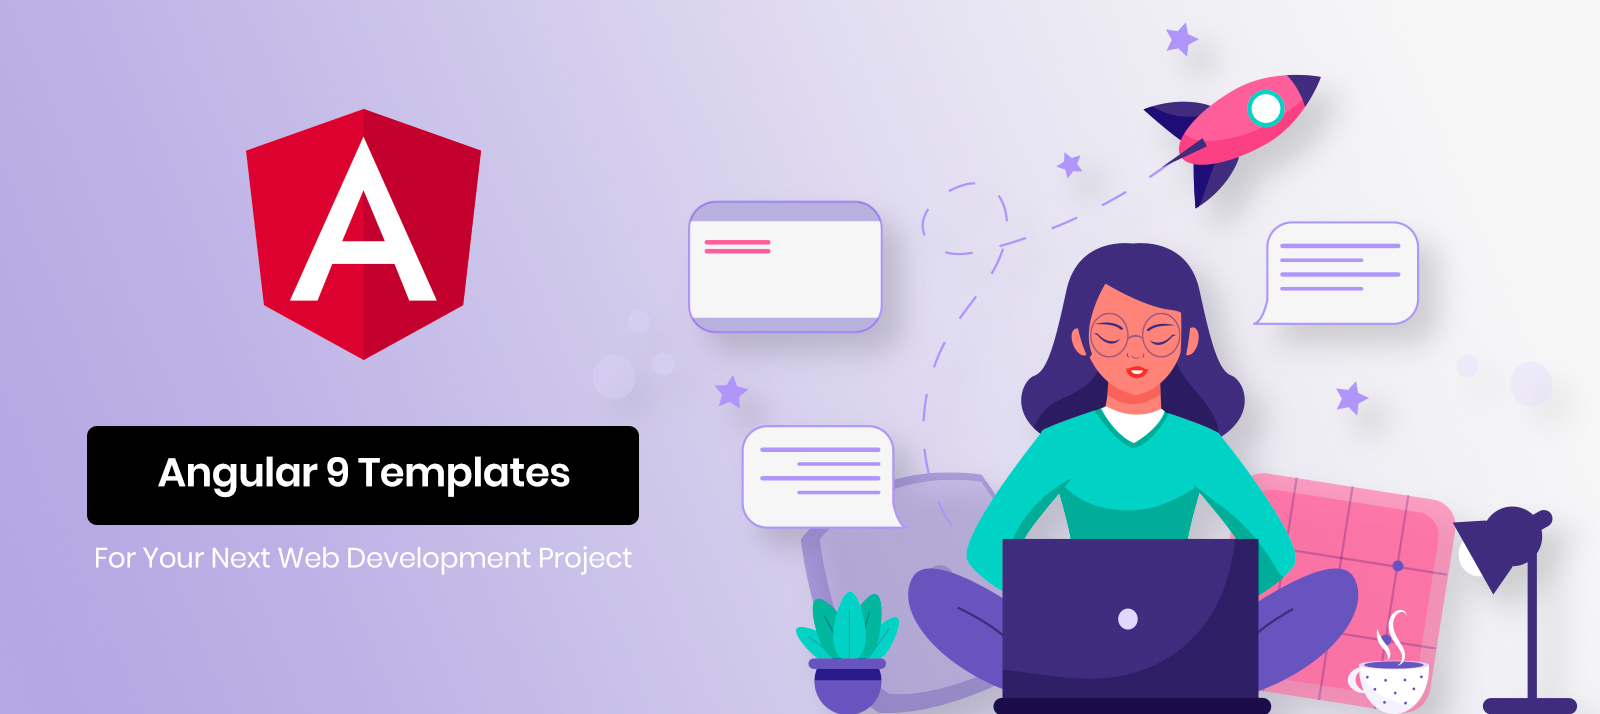 10+ Best Angular 9 Templates For Your Next Web Development Project